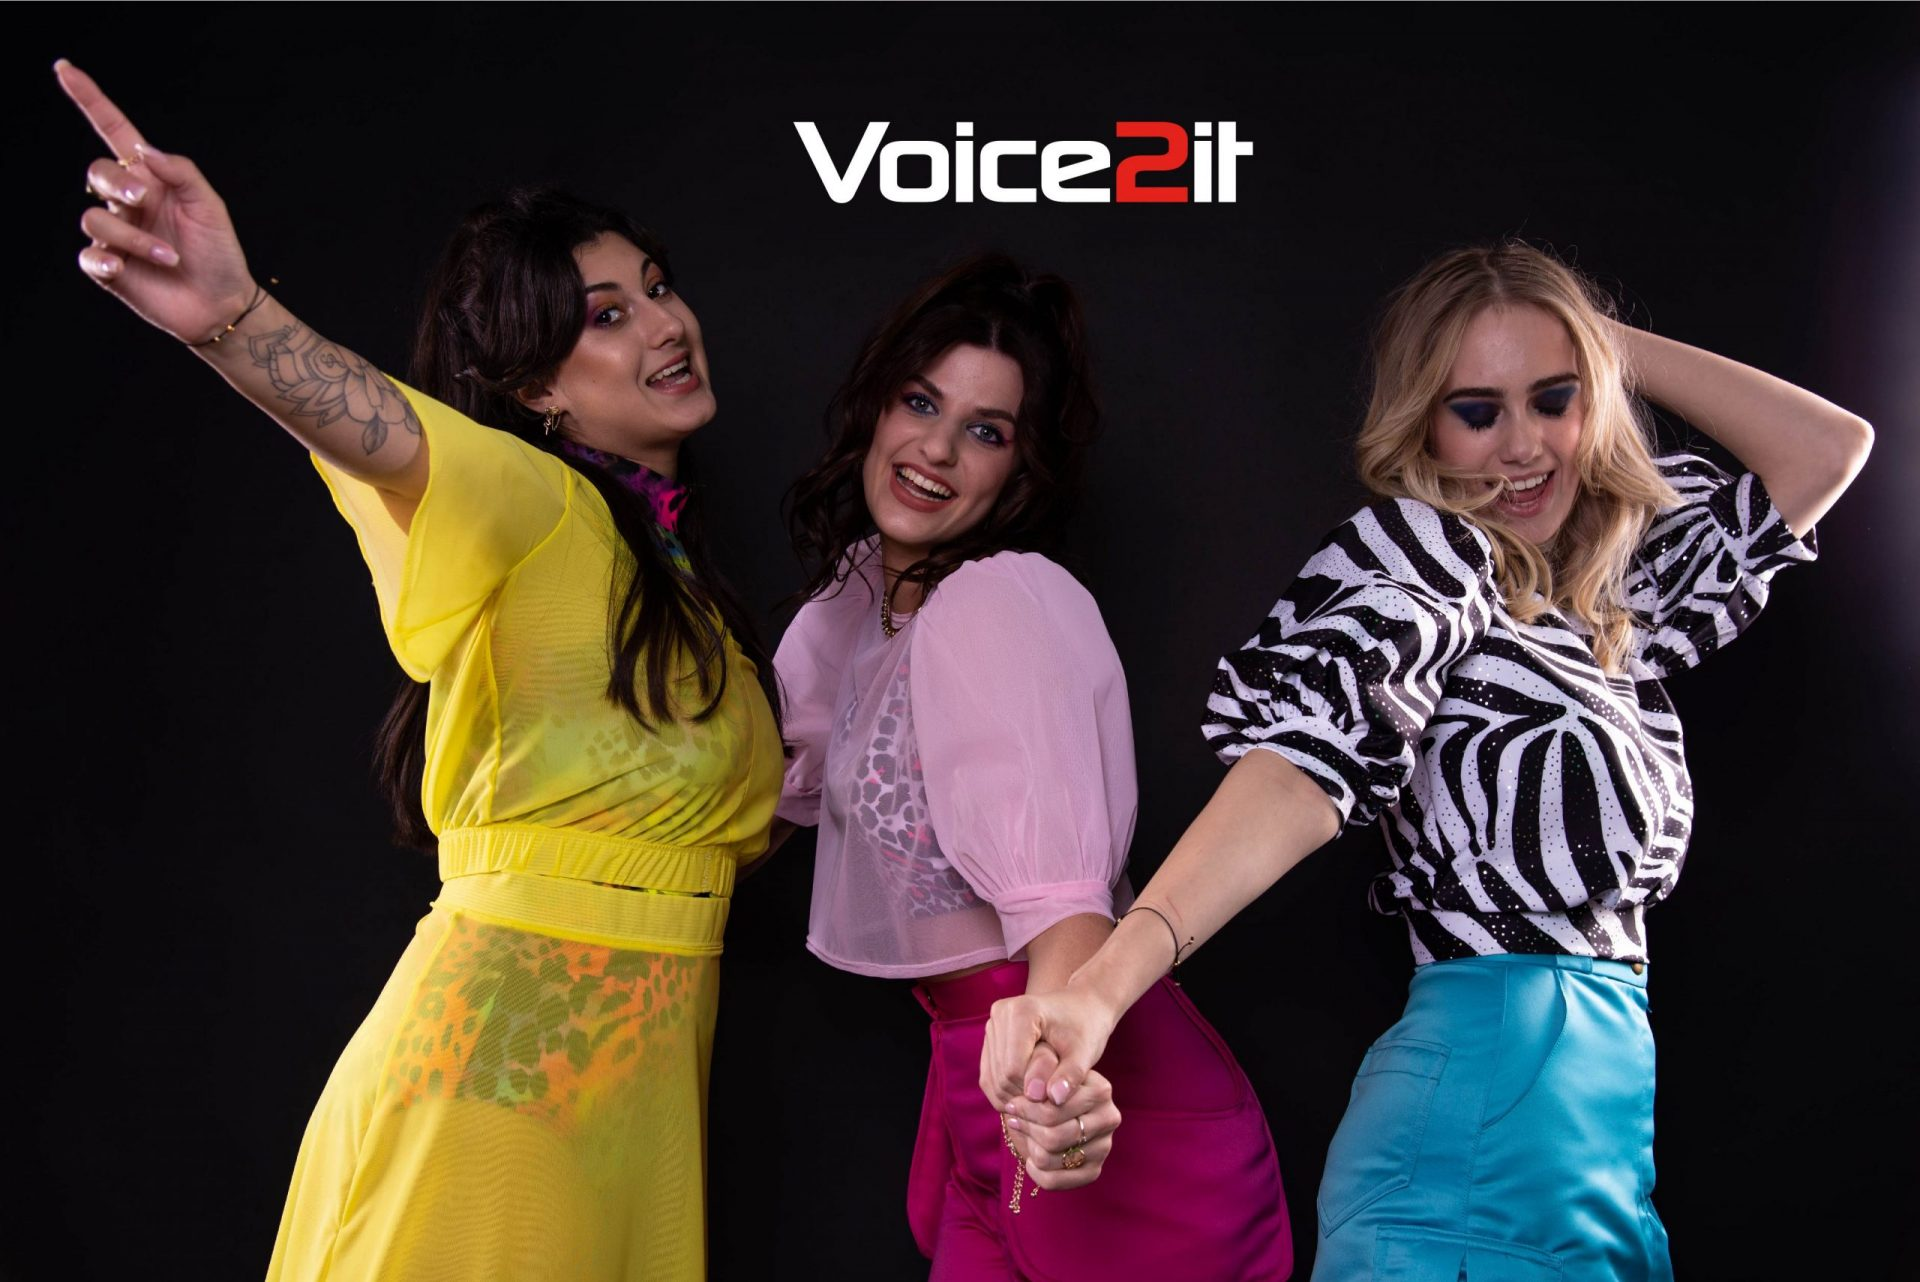 Voice2it Music and Fashion